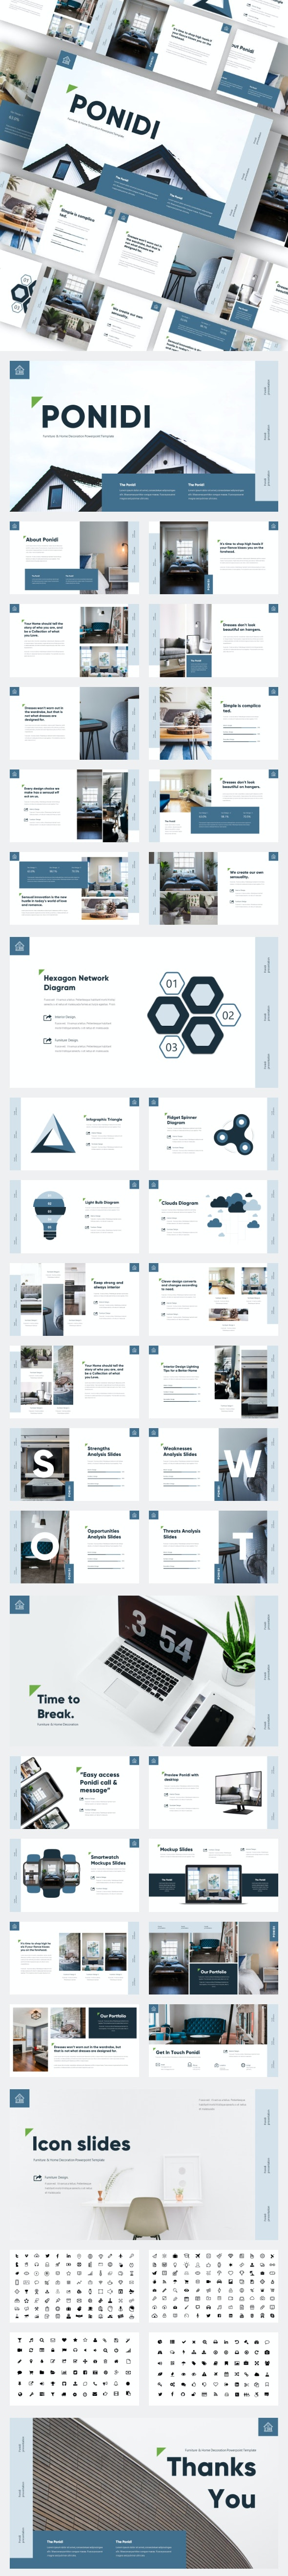 Ponidi - Furniture & Home Decoration Powerpoint Template - Business PowerPoint Templates